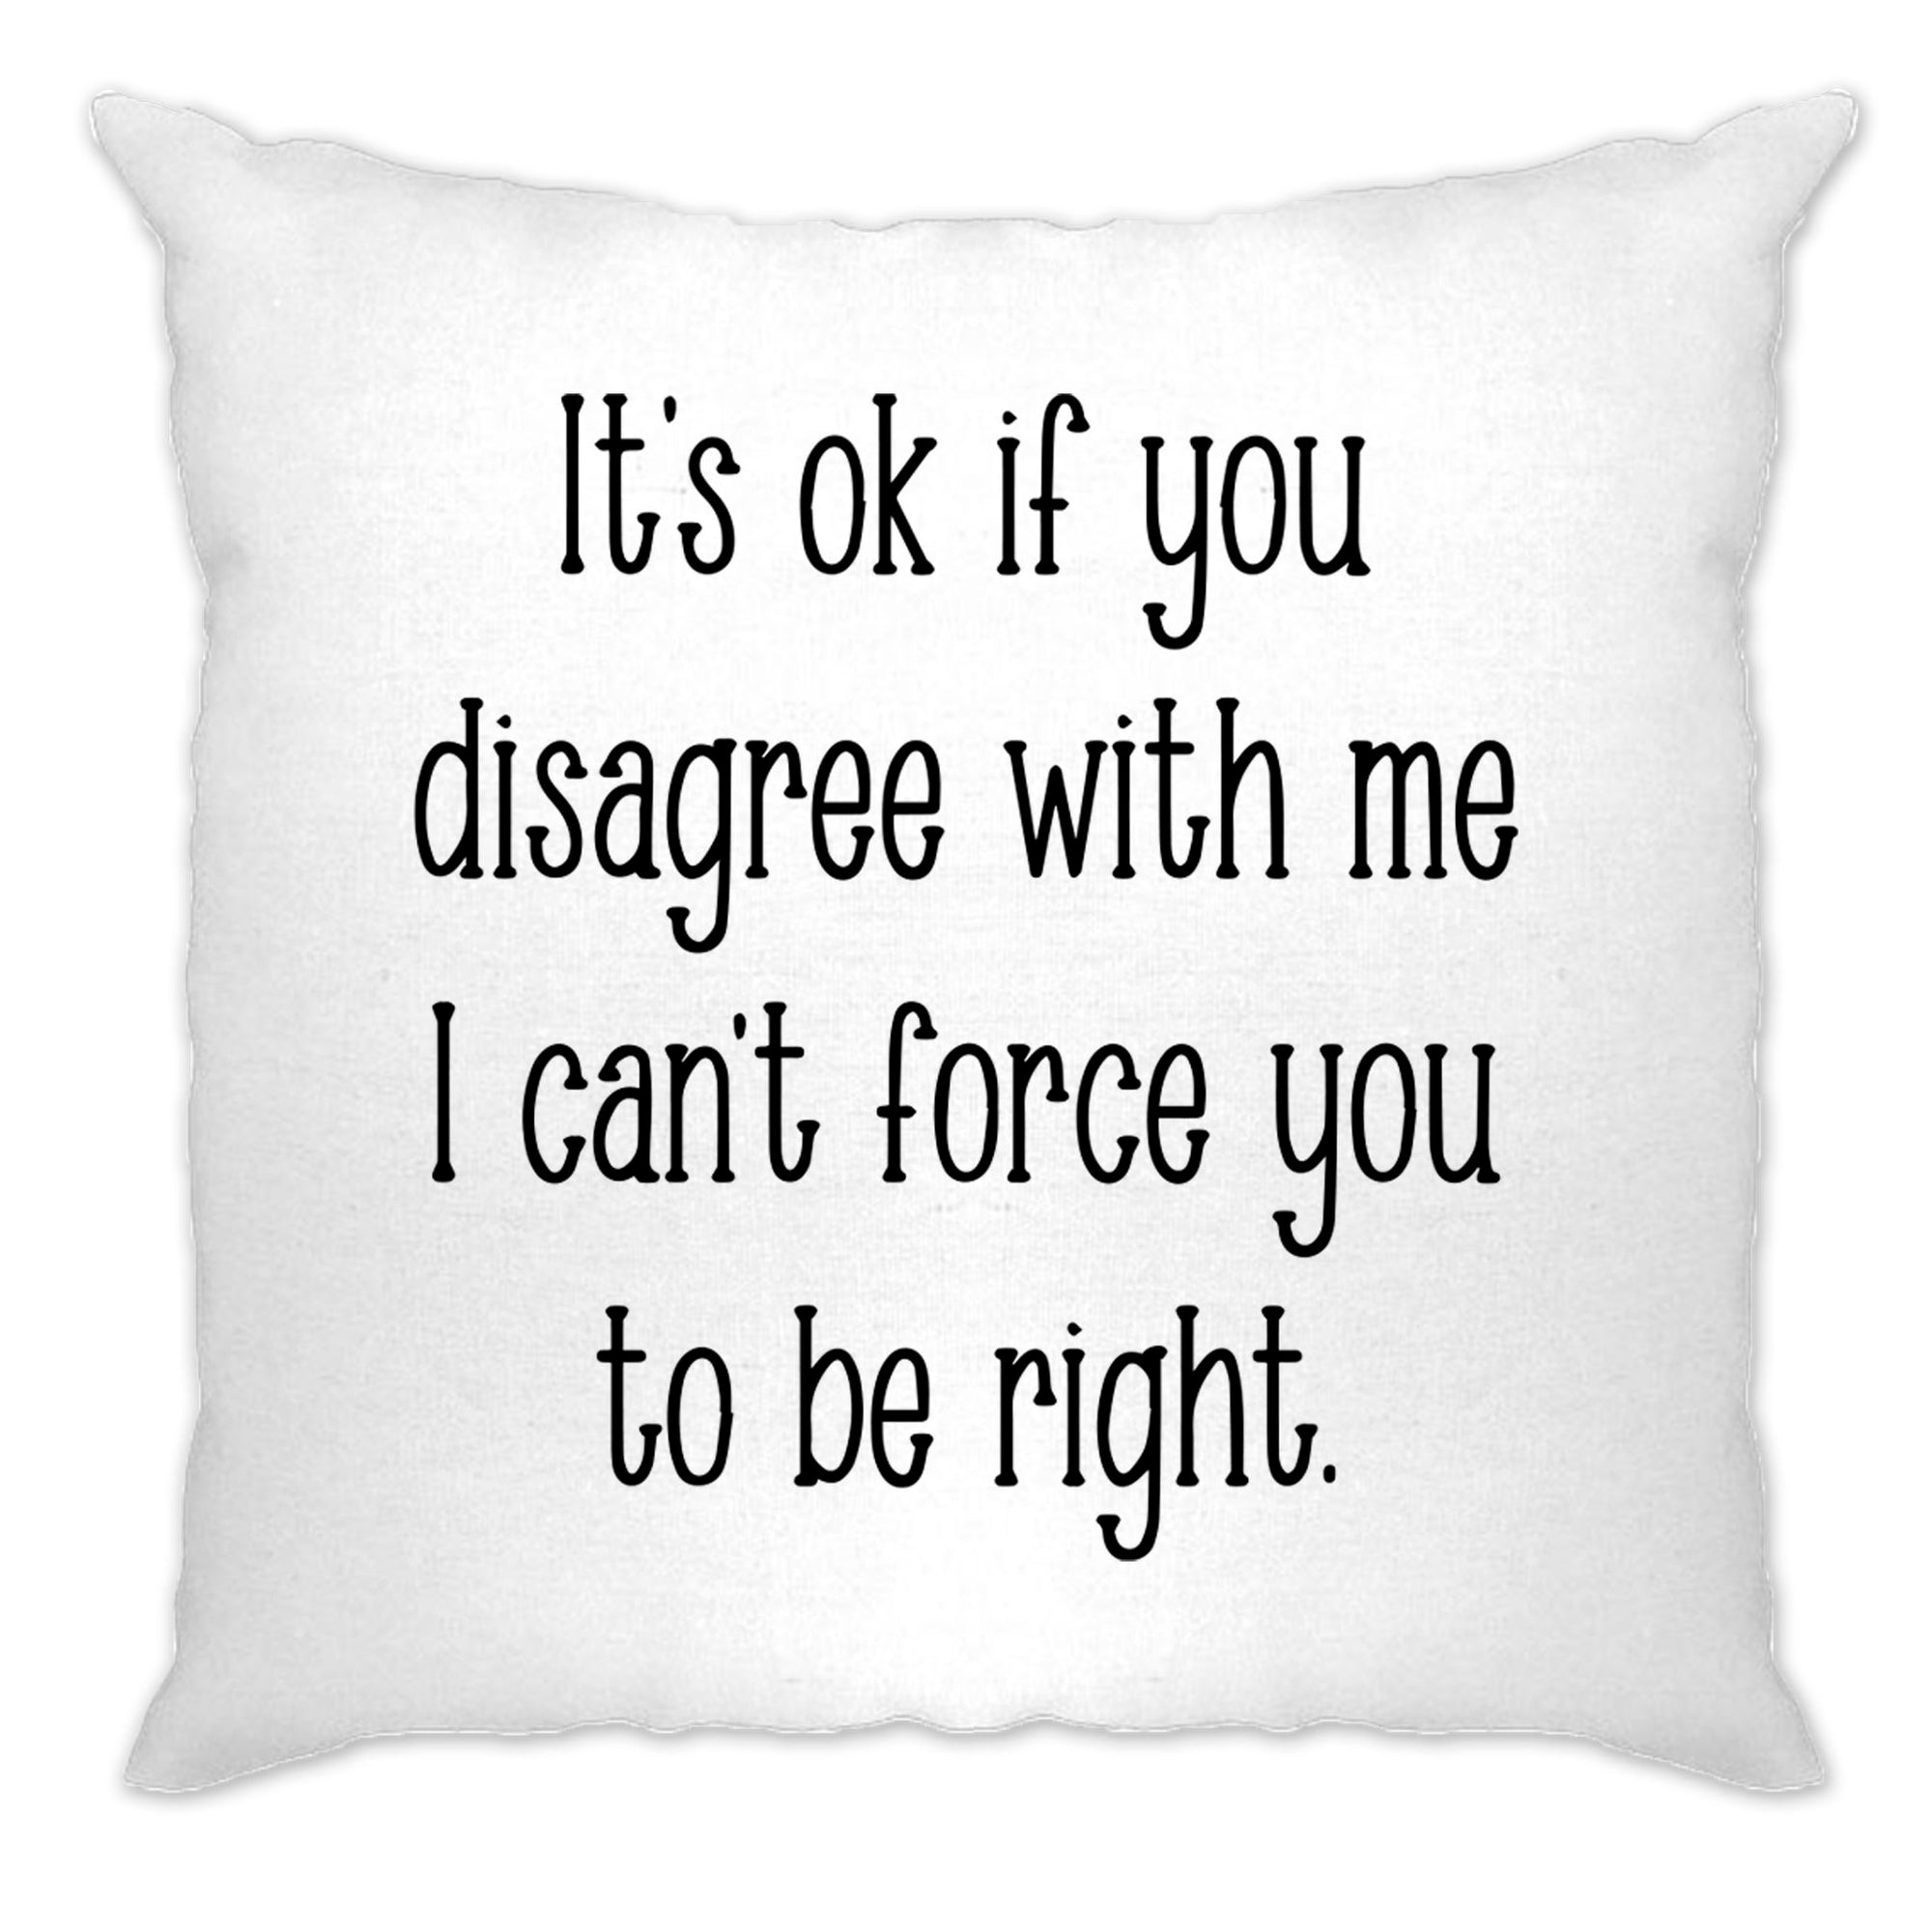 I Can't Force You To Be Right Funny Cushion Cover